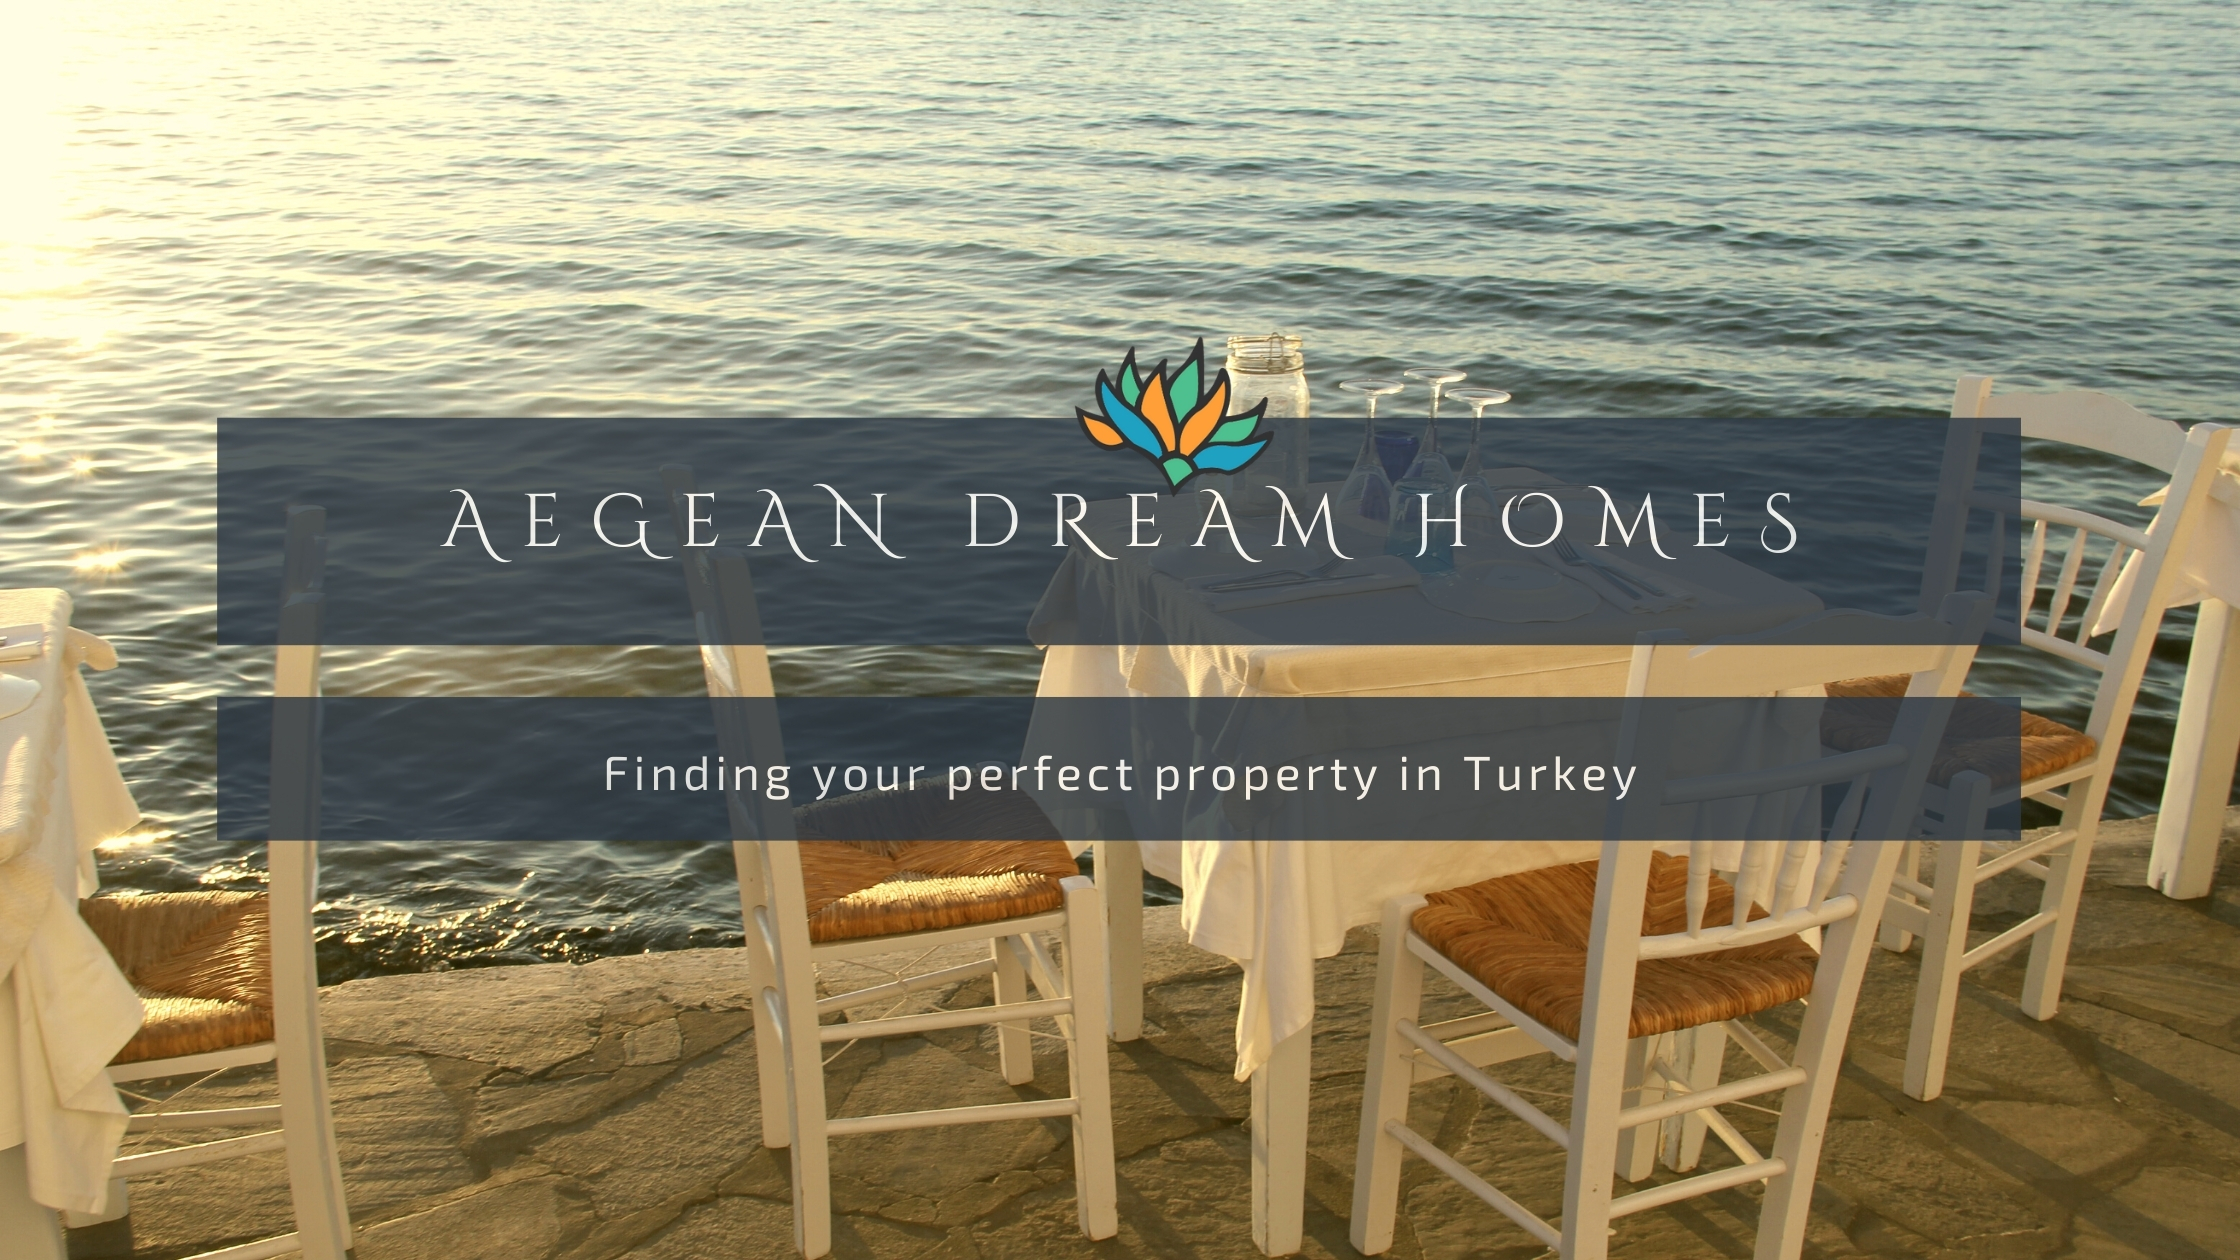 Banner of sea and dinning chairs. Text overlay reads. Aegean Dream Homes Finding your perfect property in Turkey